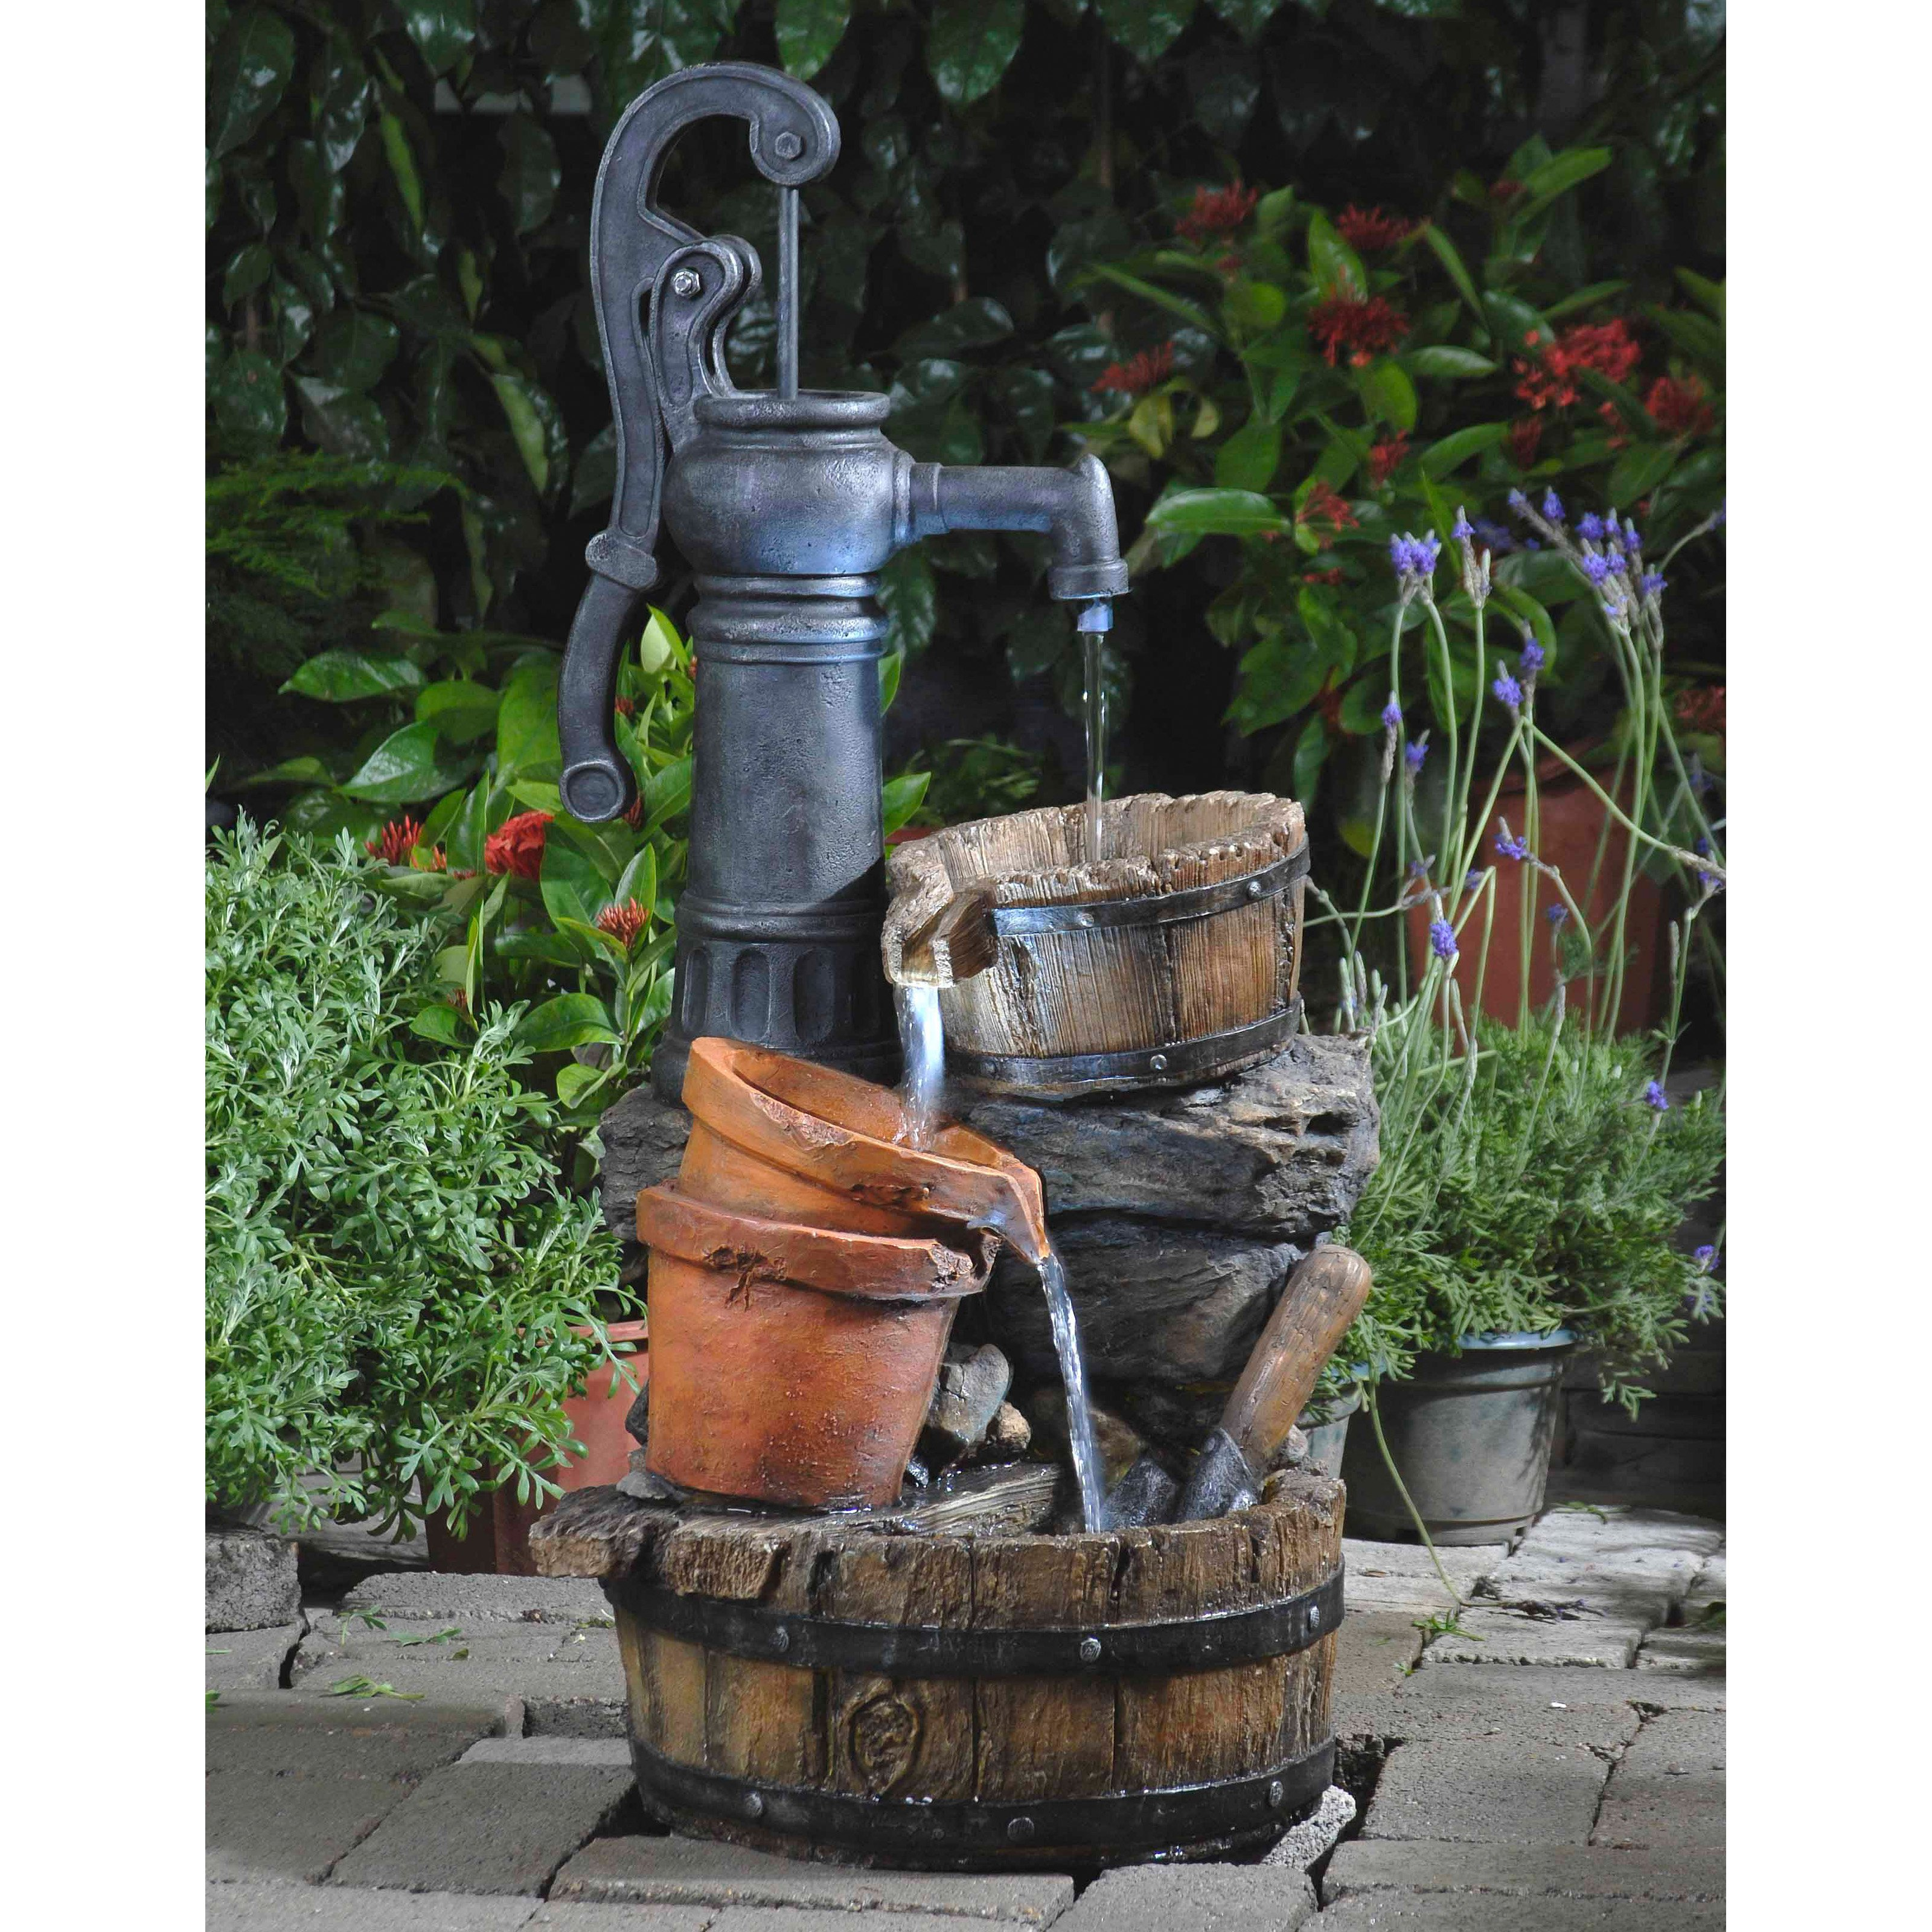 Merveilleux Jeco Classic Water Pump Outdoor Fountain With Led Light